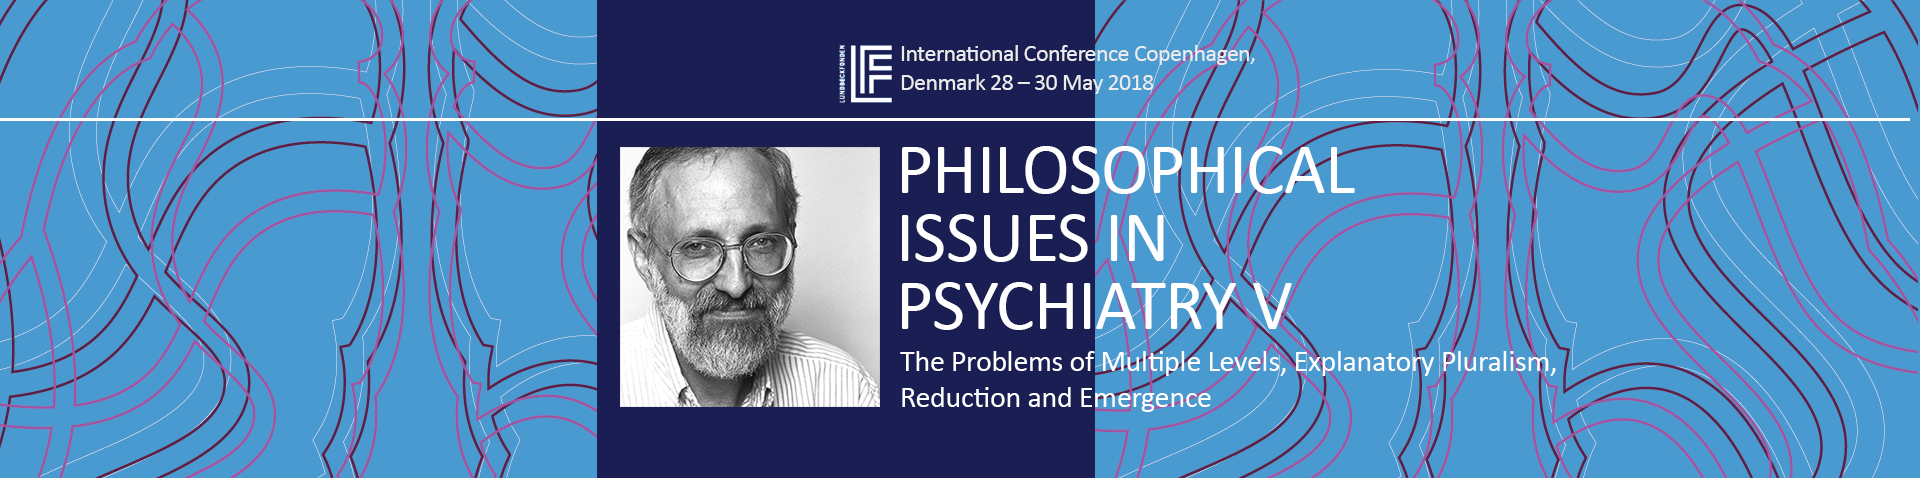 Philosophical Issues In Psychiatry V Conference